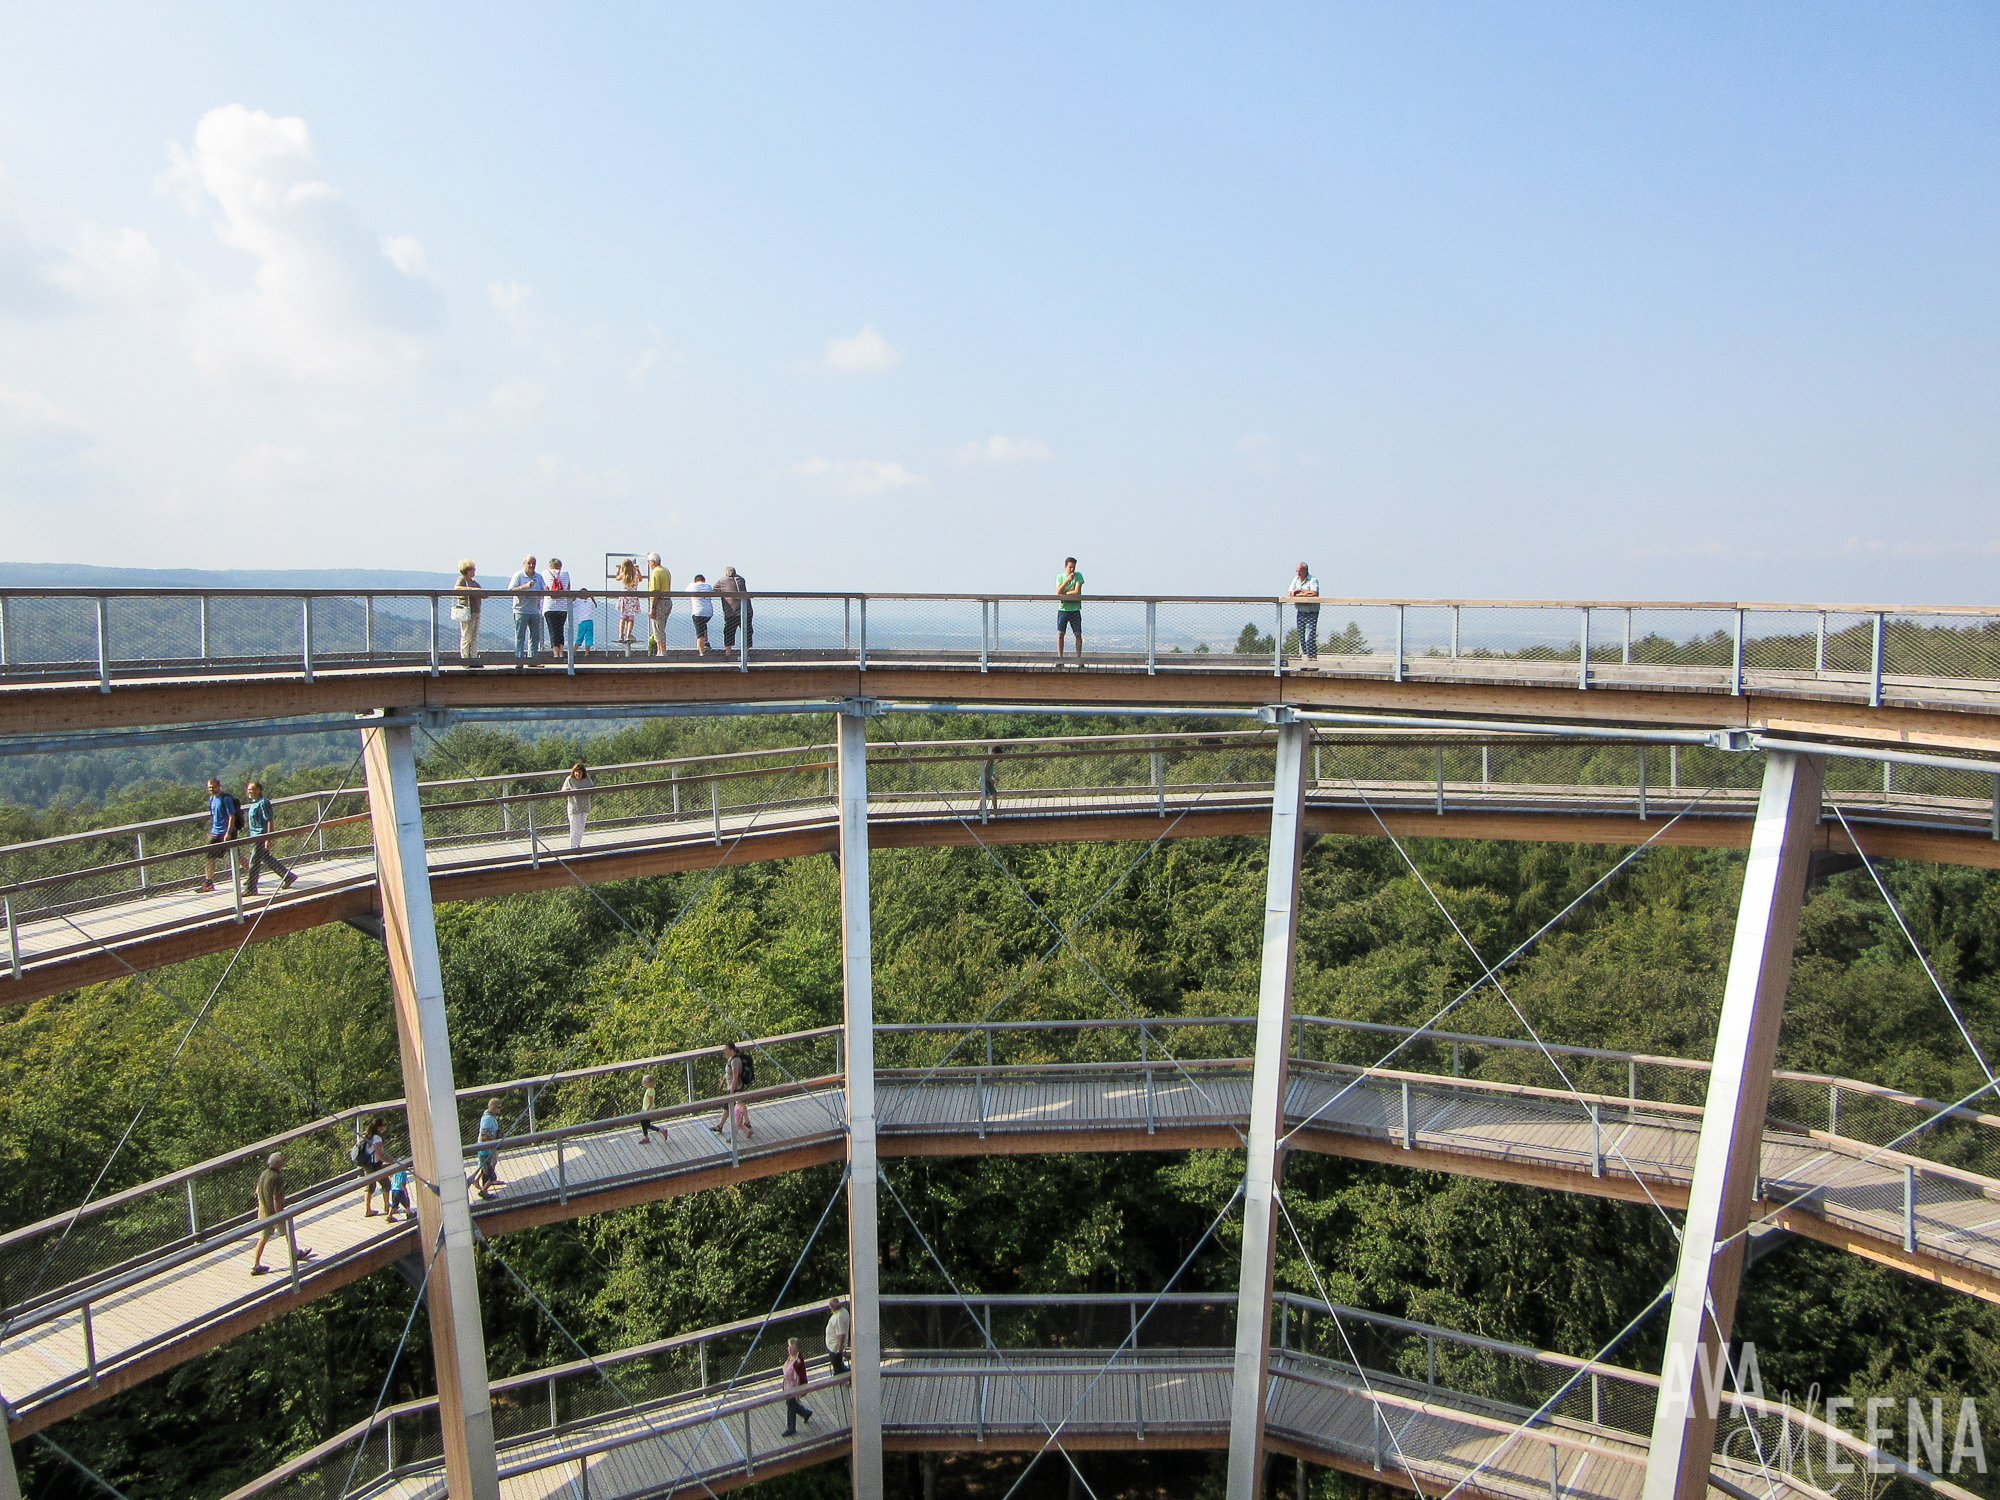 Visiting the Baumwipfelpfad Steigerwald – an Incredible Treetop Path in Bavaria, Germany.